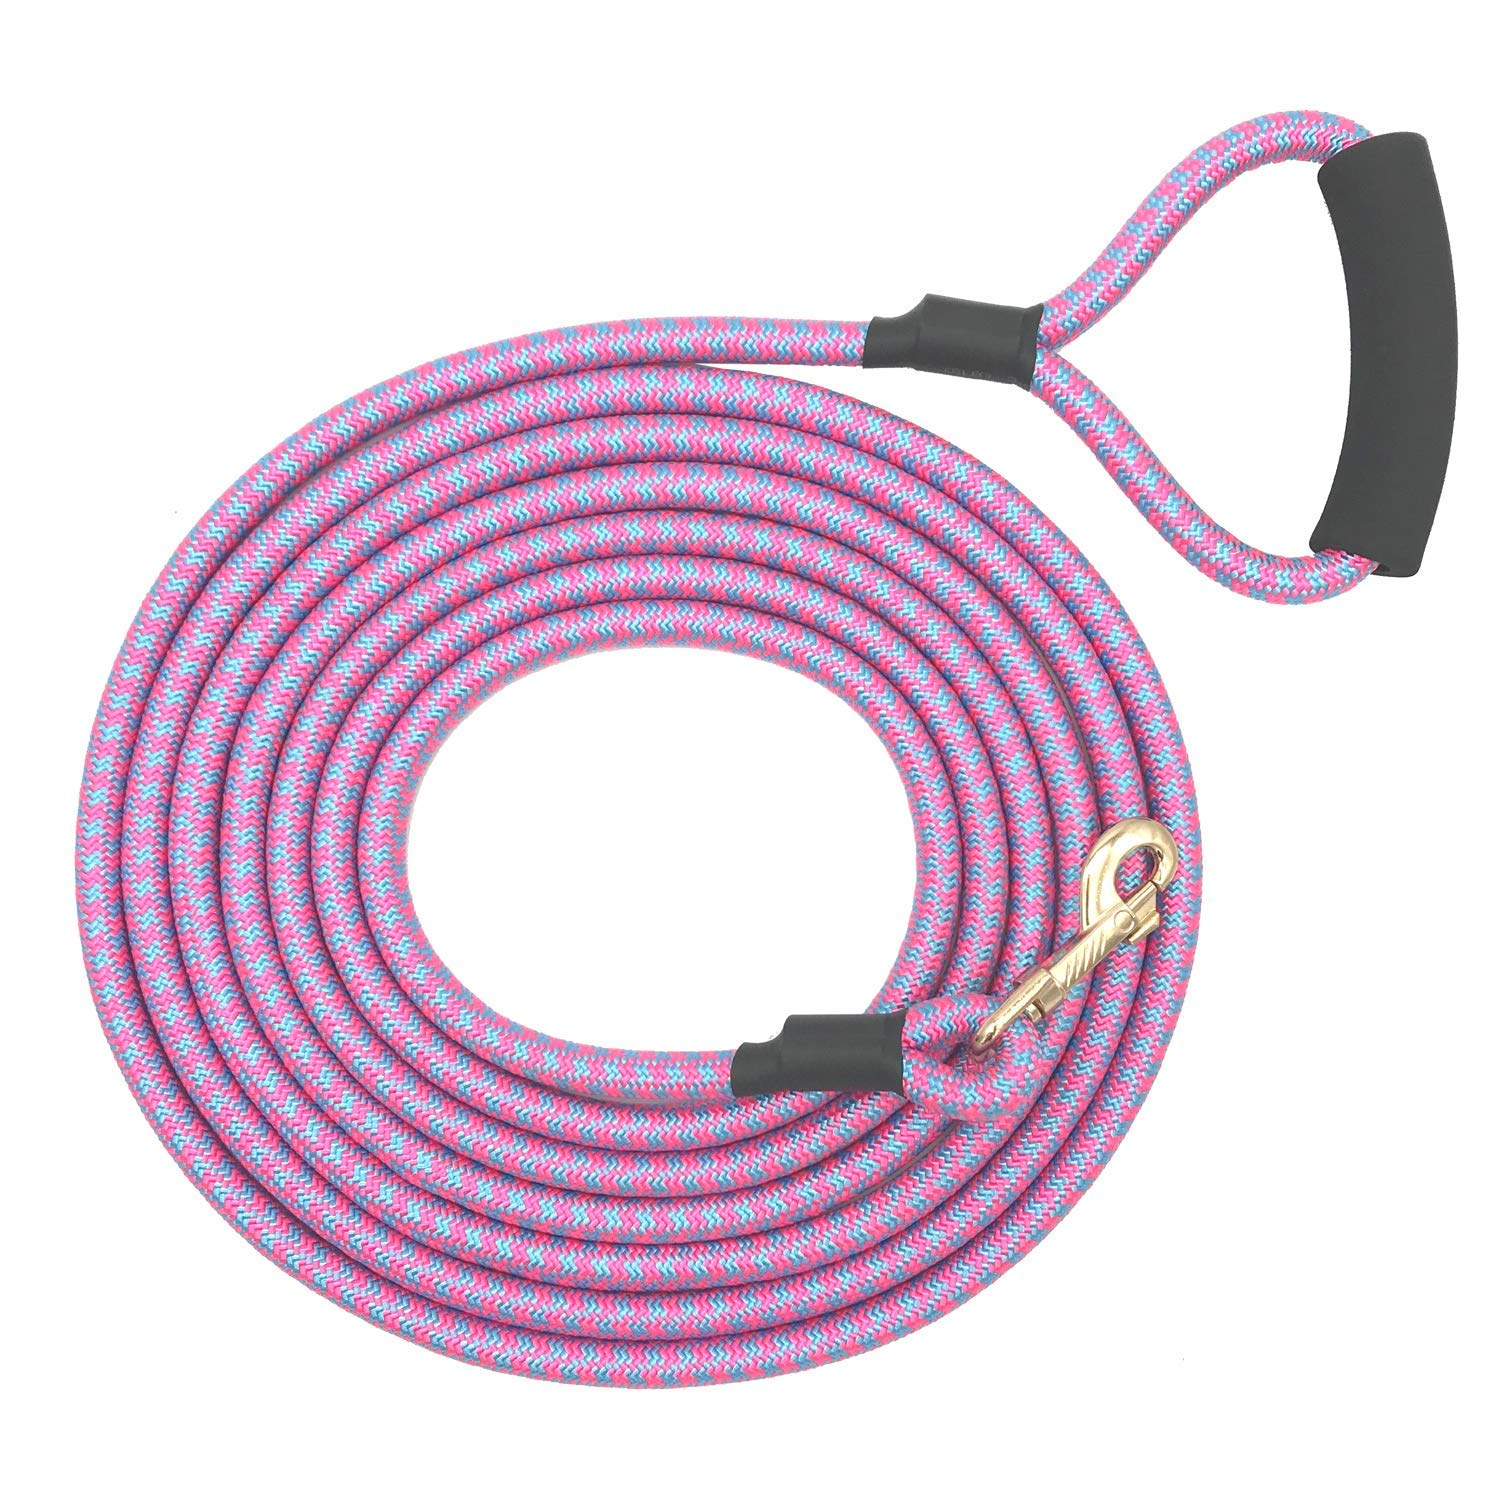 Nylon Strong Dog Rope Lead Leash Training Dog Lead with Soft Handle 6-20 FT Long Pink bluee (Dia 0.5  15FT)